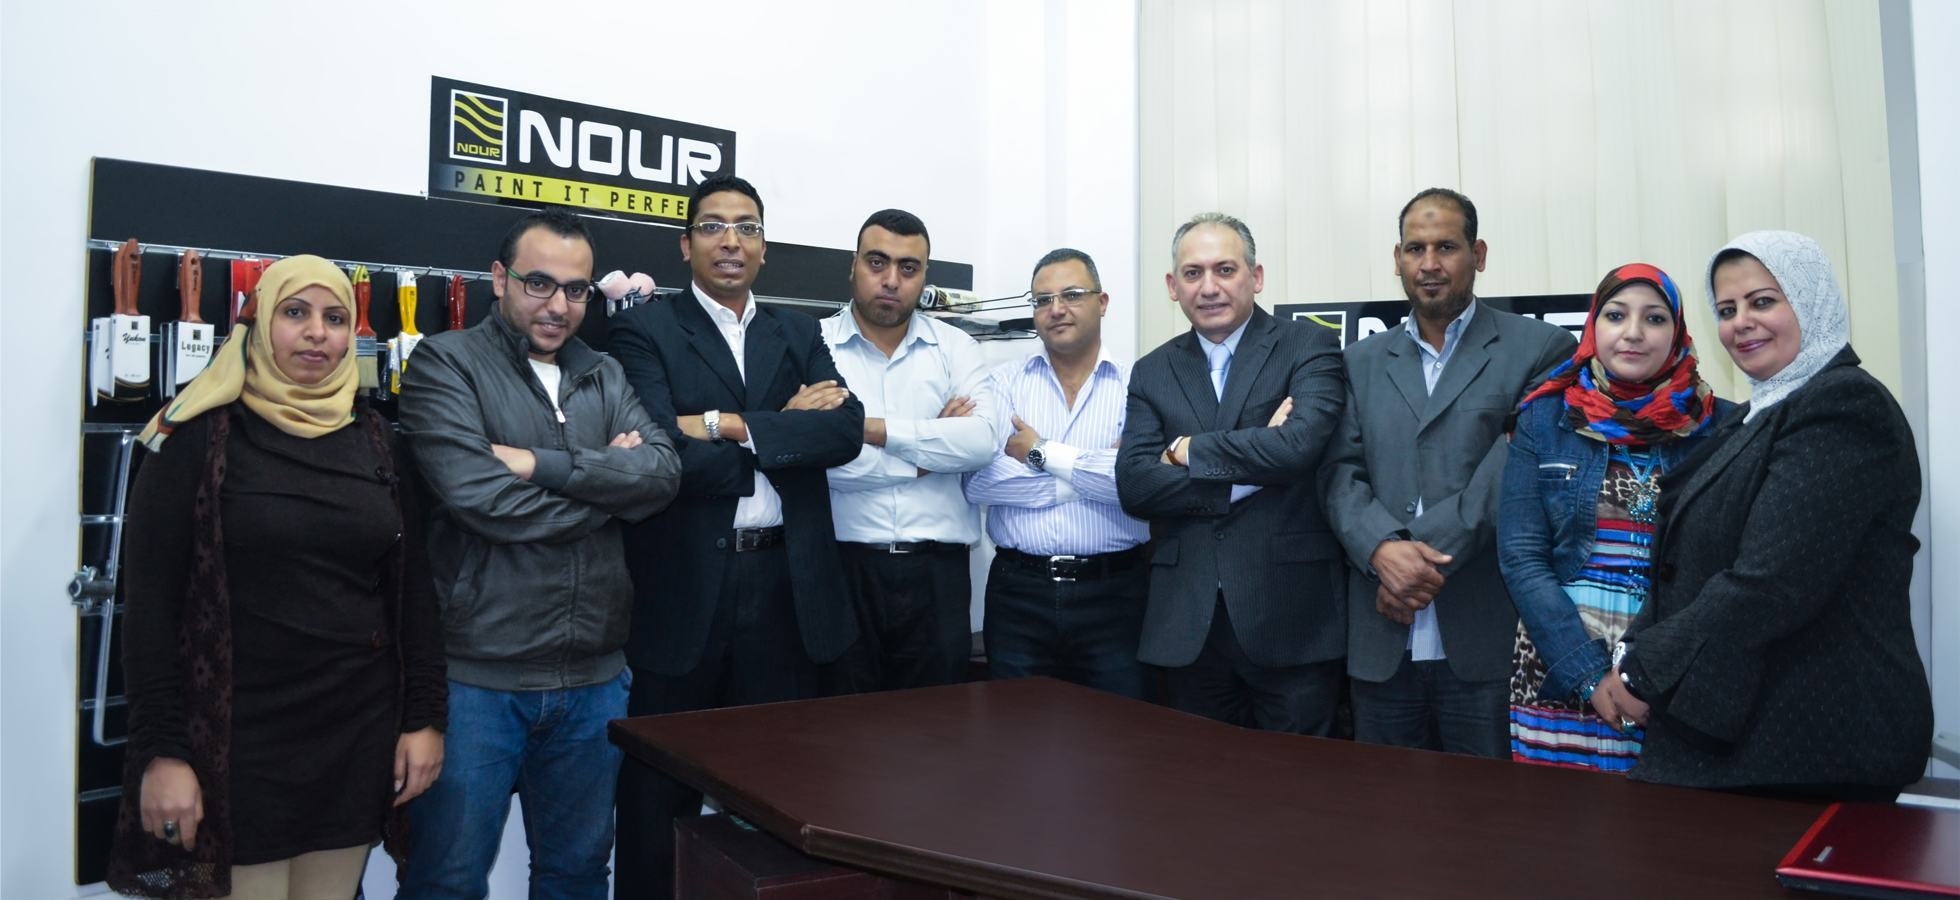 Nour Egypt team photo.